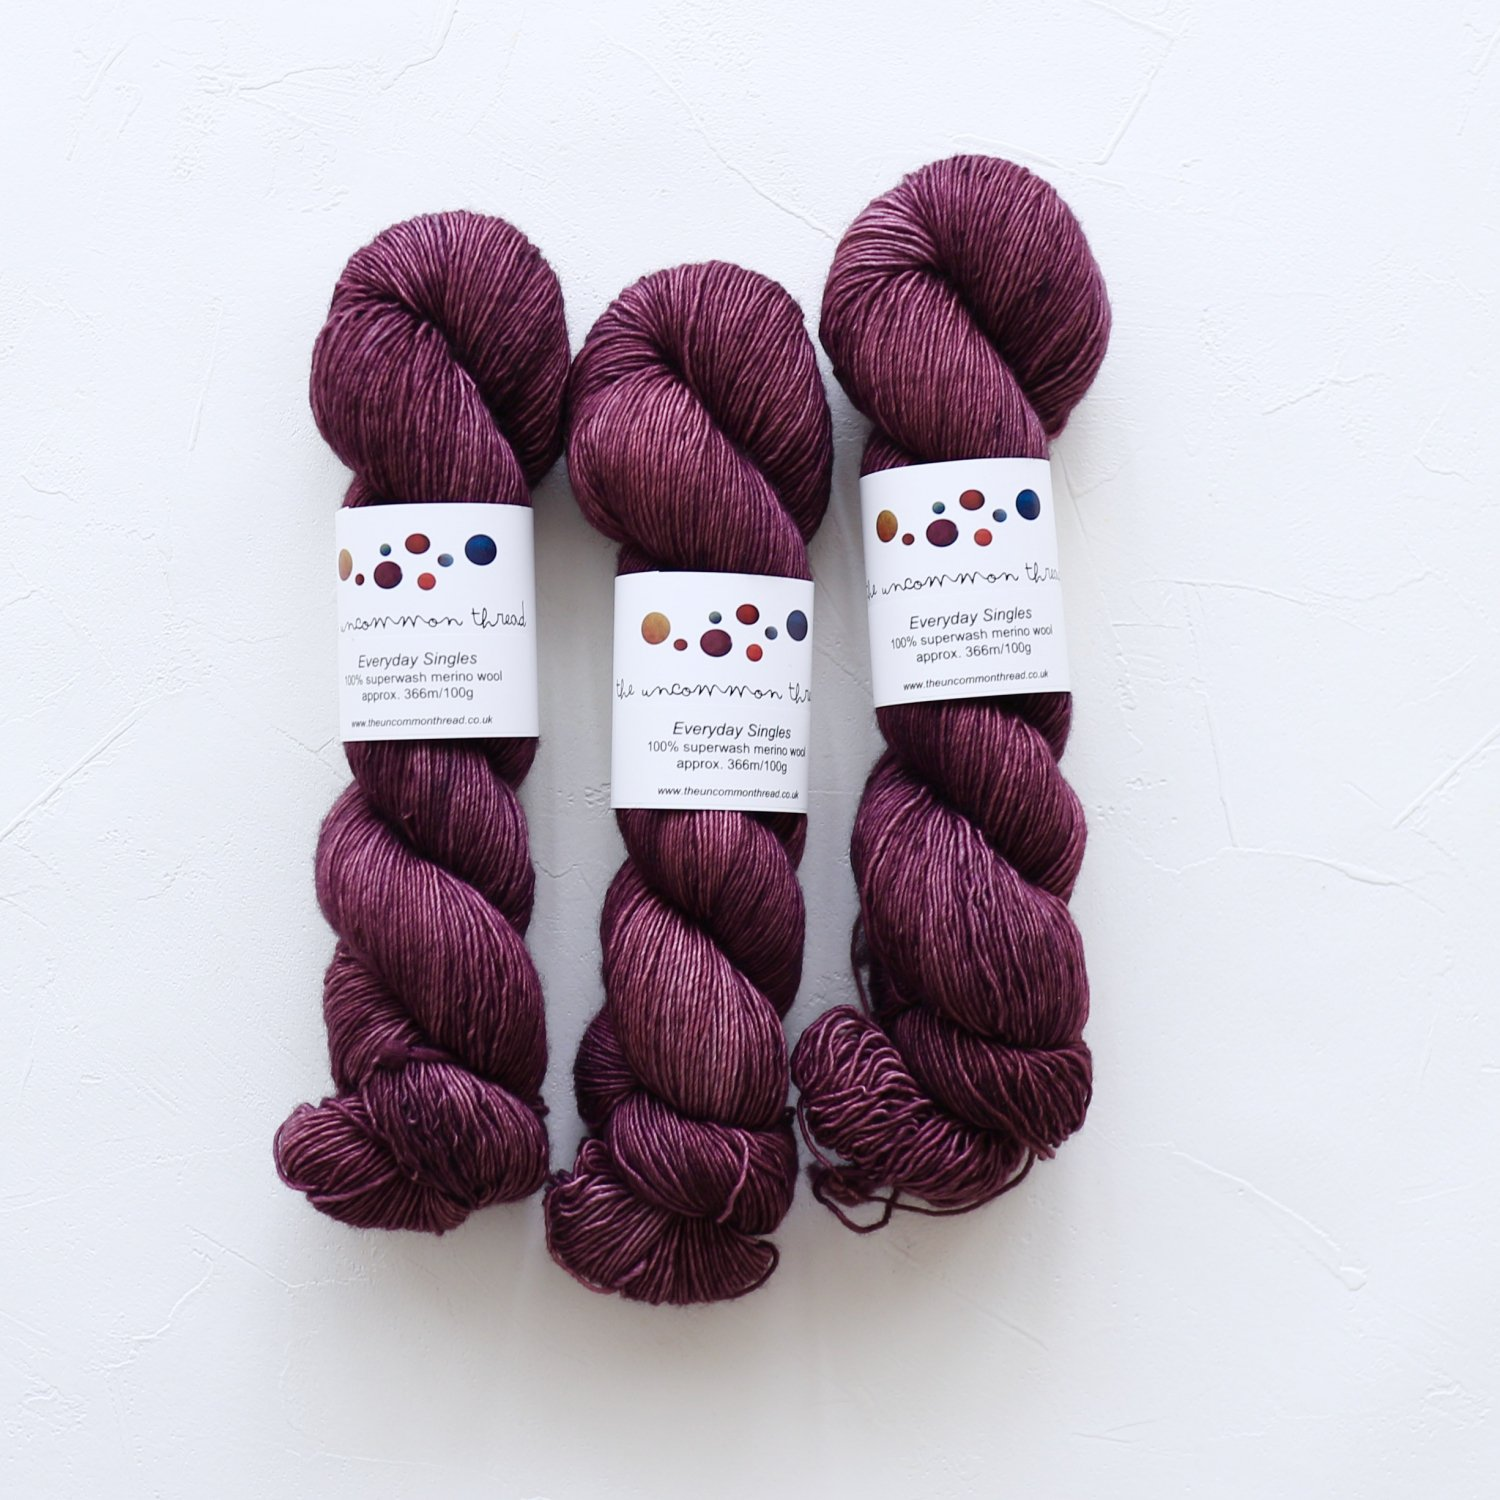 【The Uncommon Thread】<br>Everyday Singles<br>Ripe Plum